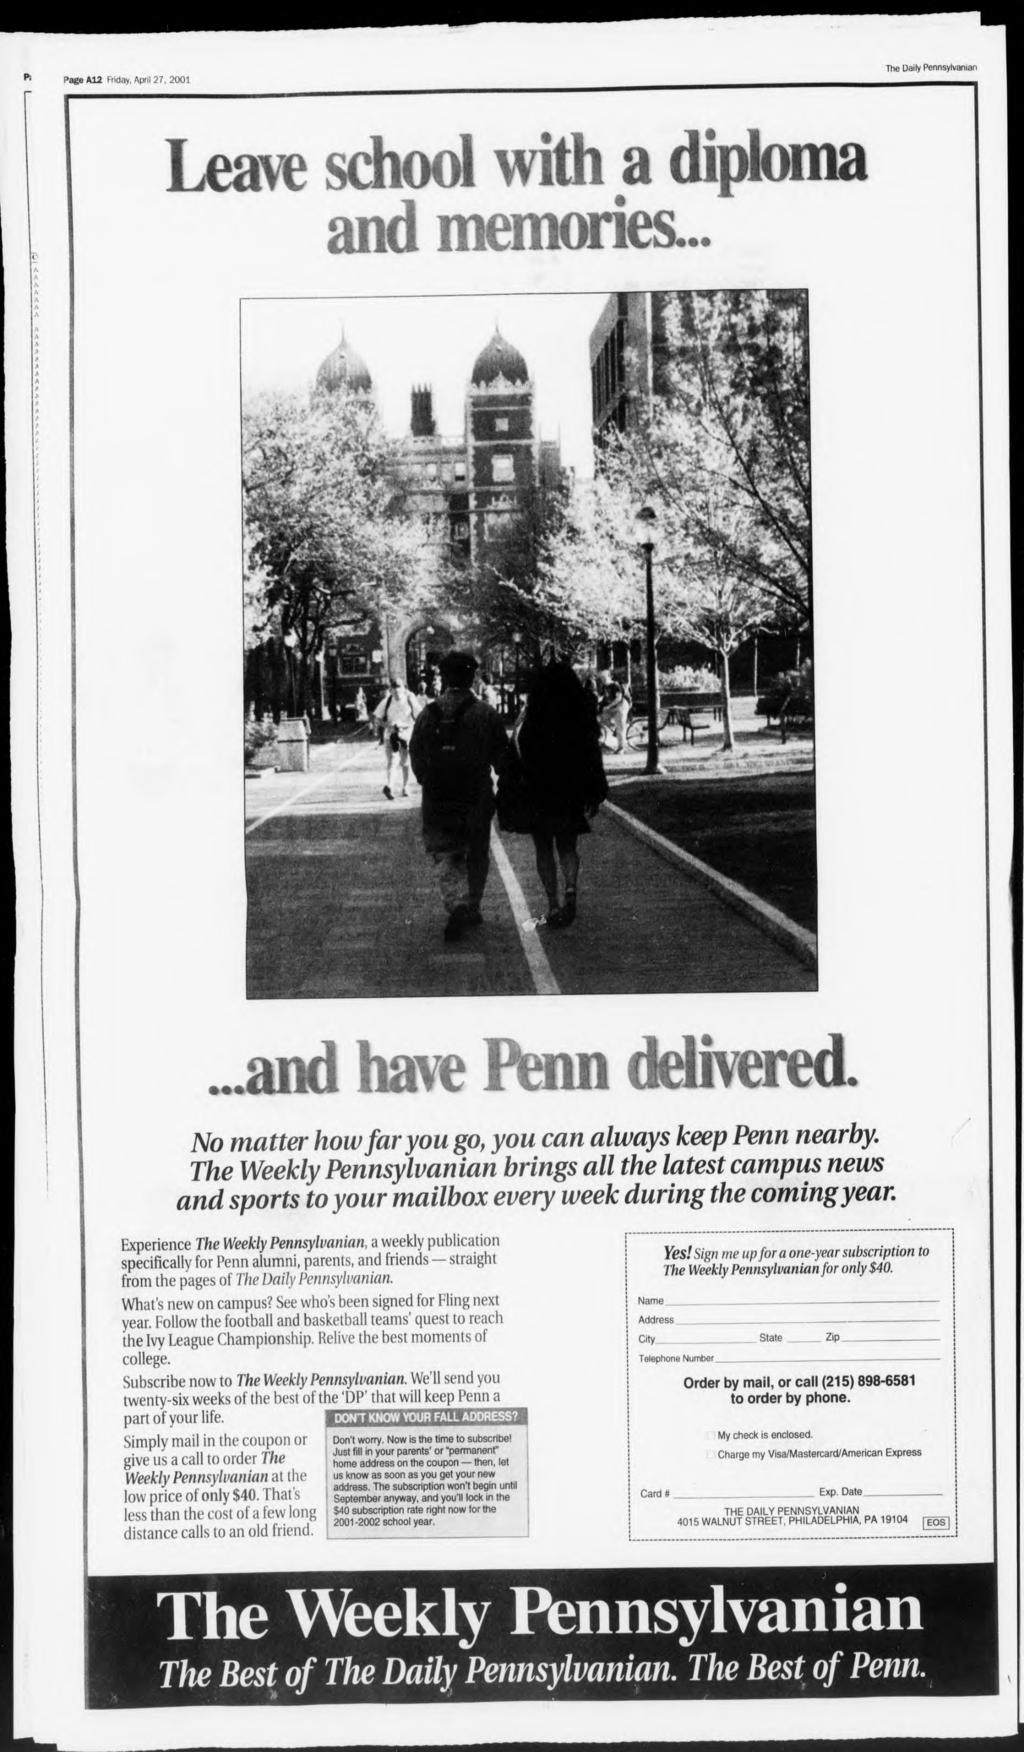 Pi Page A12 day. April, 20 Leave school with a diploma and memories......and have Penn delivered. No matter how far you go, you can always keep Penn nearby.